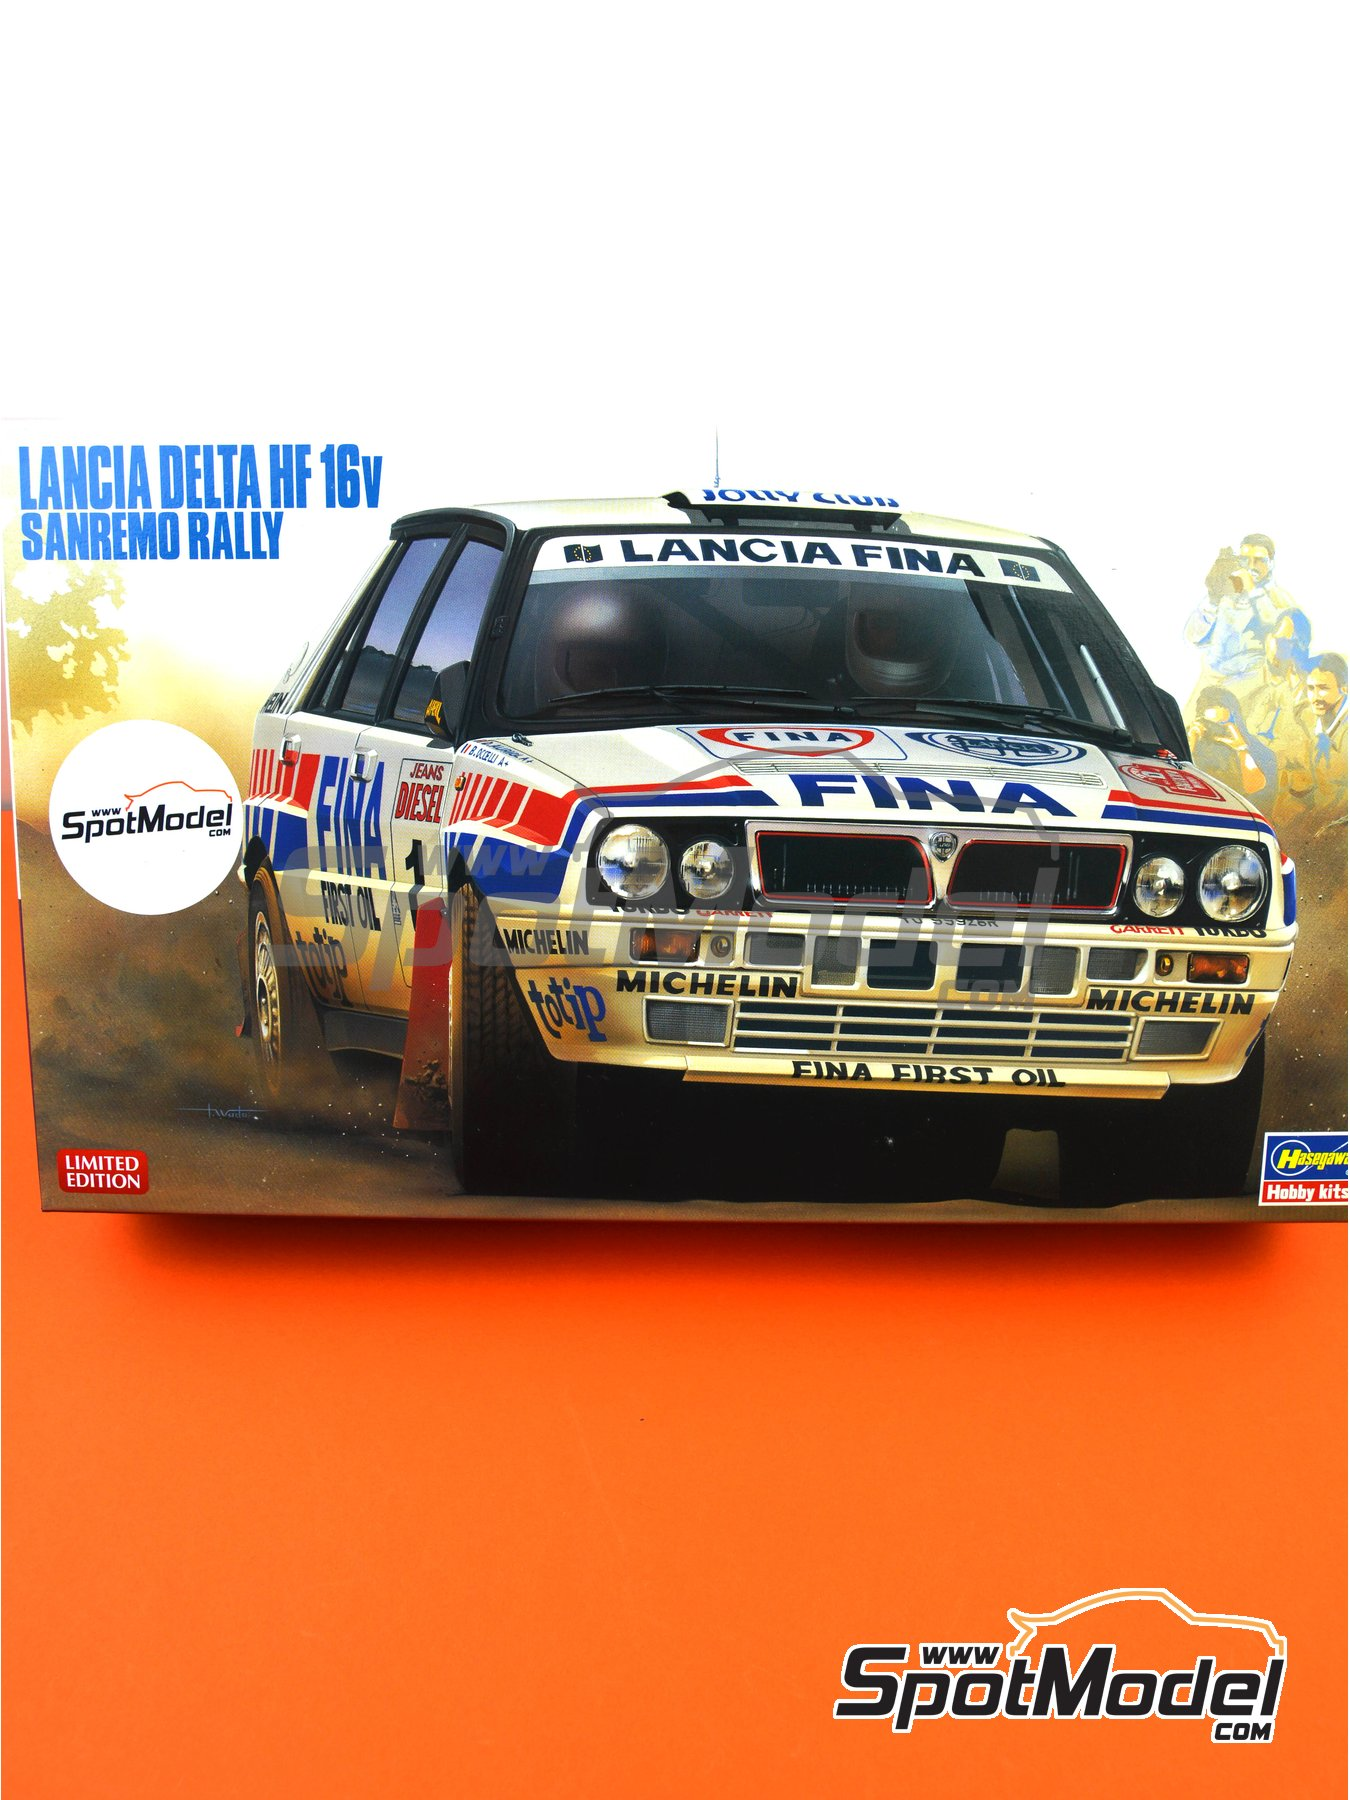 Lancia Delta HF 16v Fina - Sanremo Rally 1991 | Model car kit in 1/24 scale manufactured by Hasegawa (ref. 20343) image